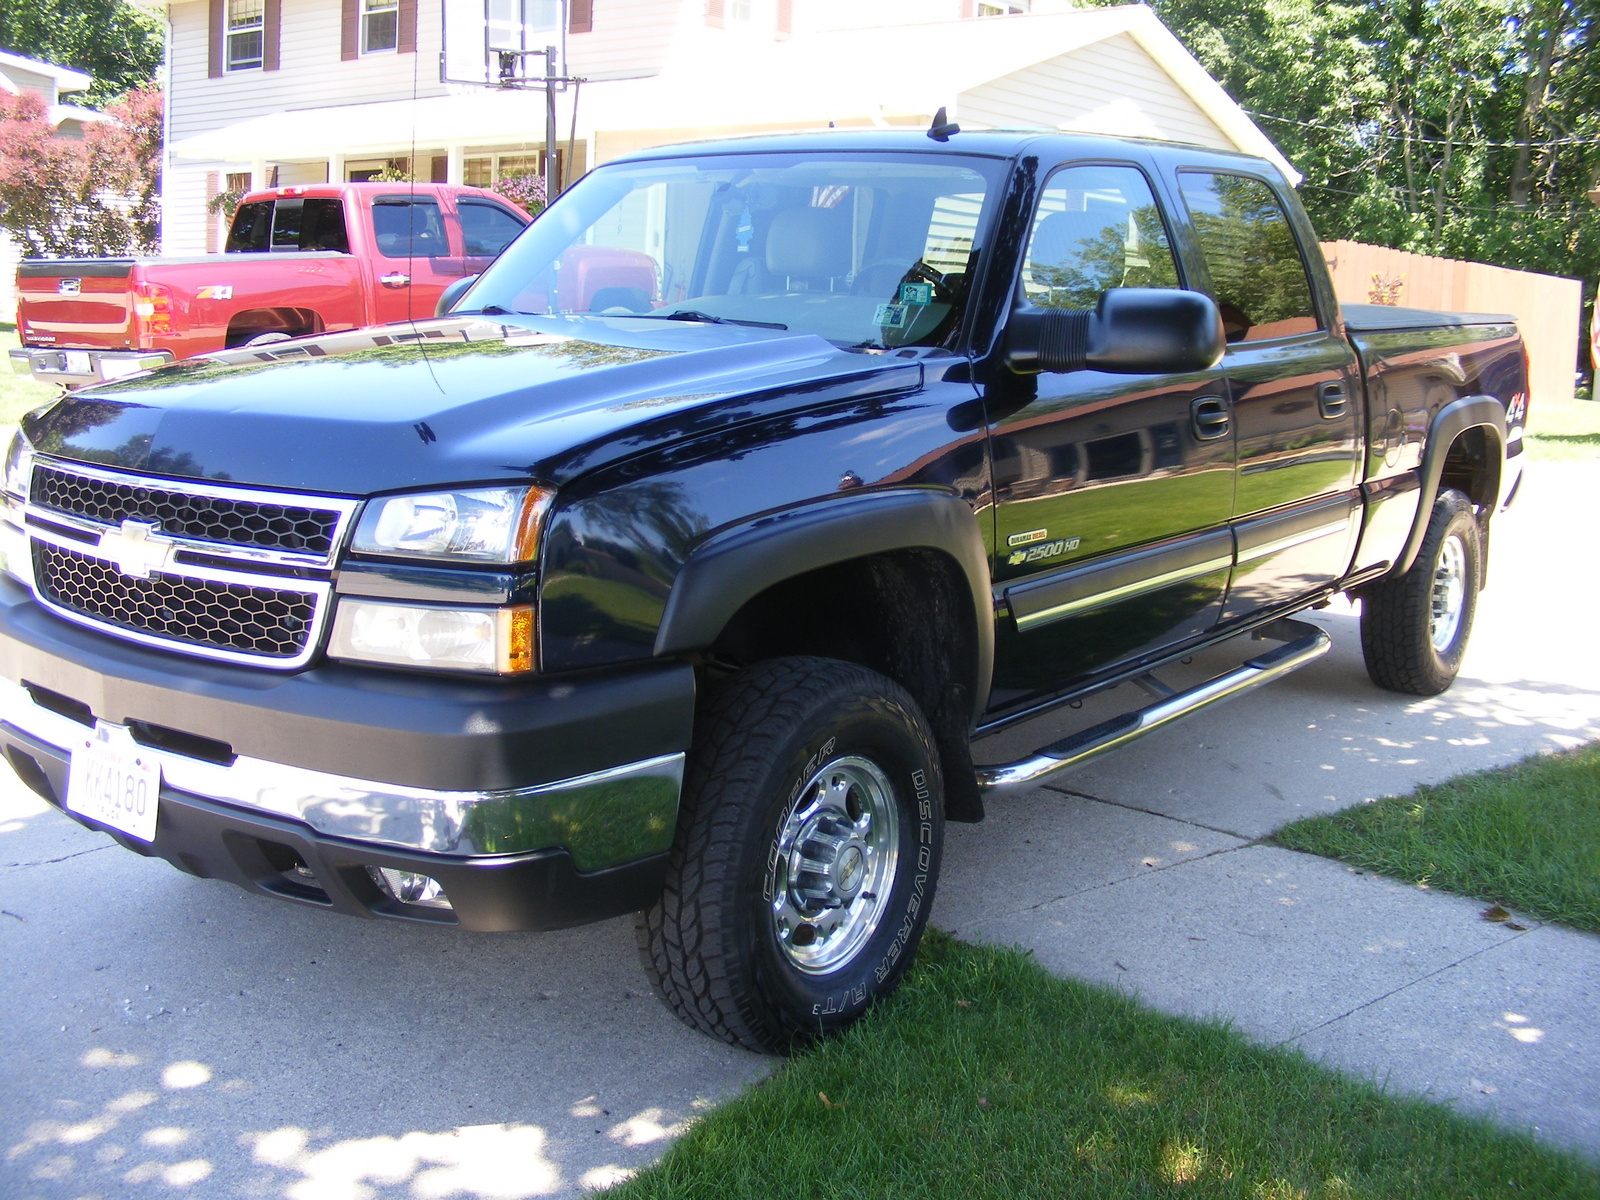 2006 chevrolet silverado 2500hd - pictures